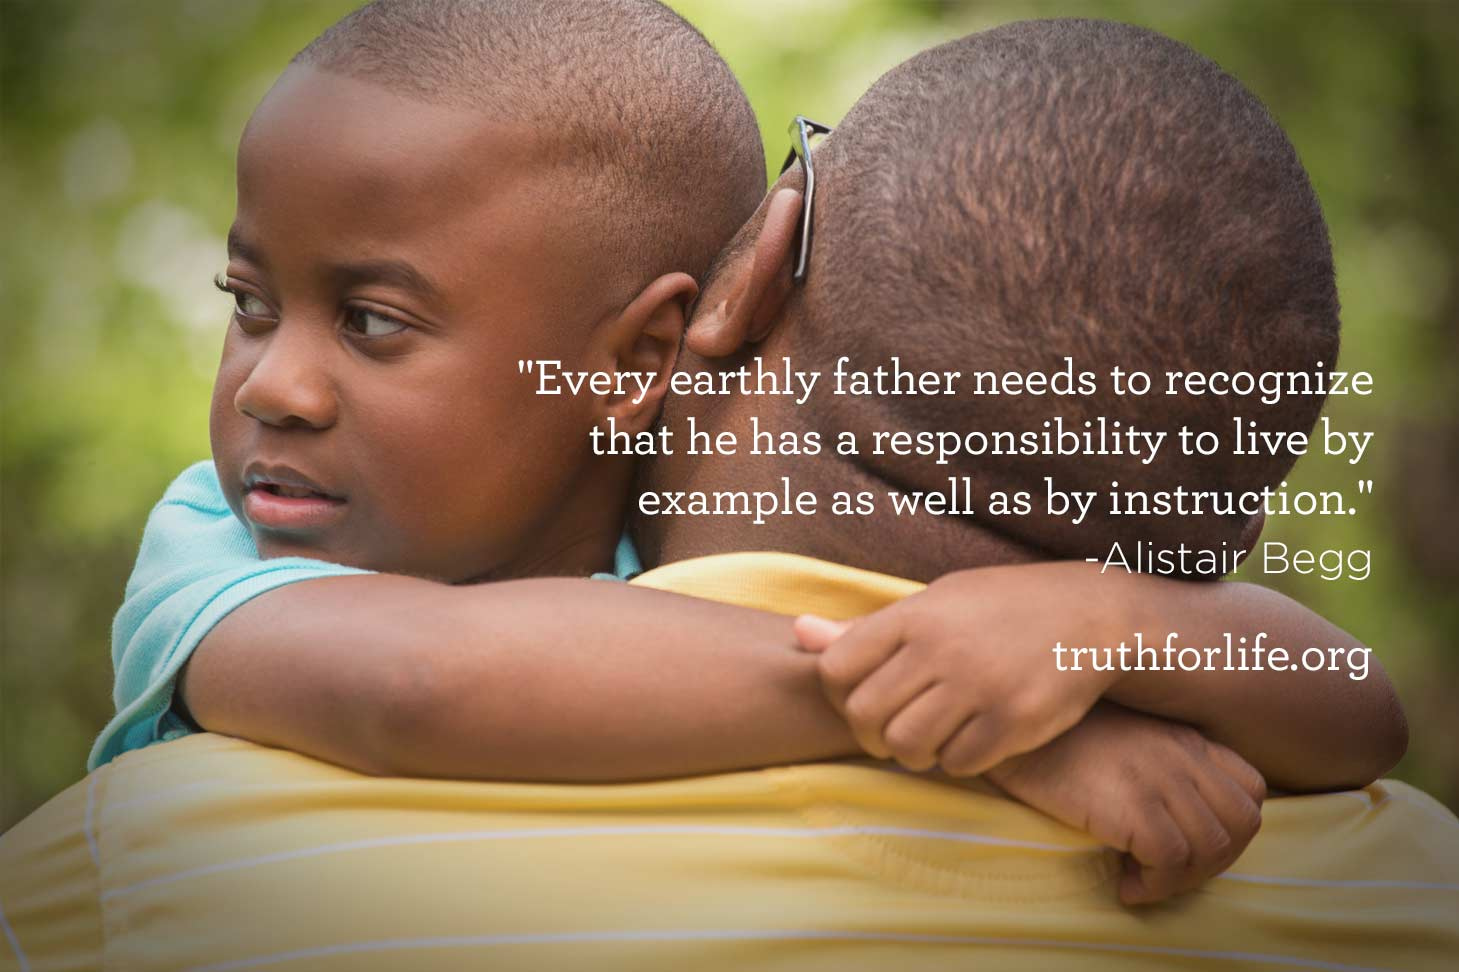 thumbnail image for Earthly Fathers